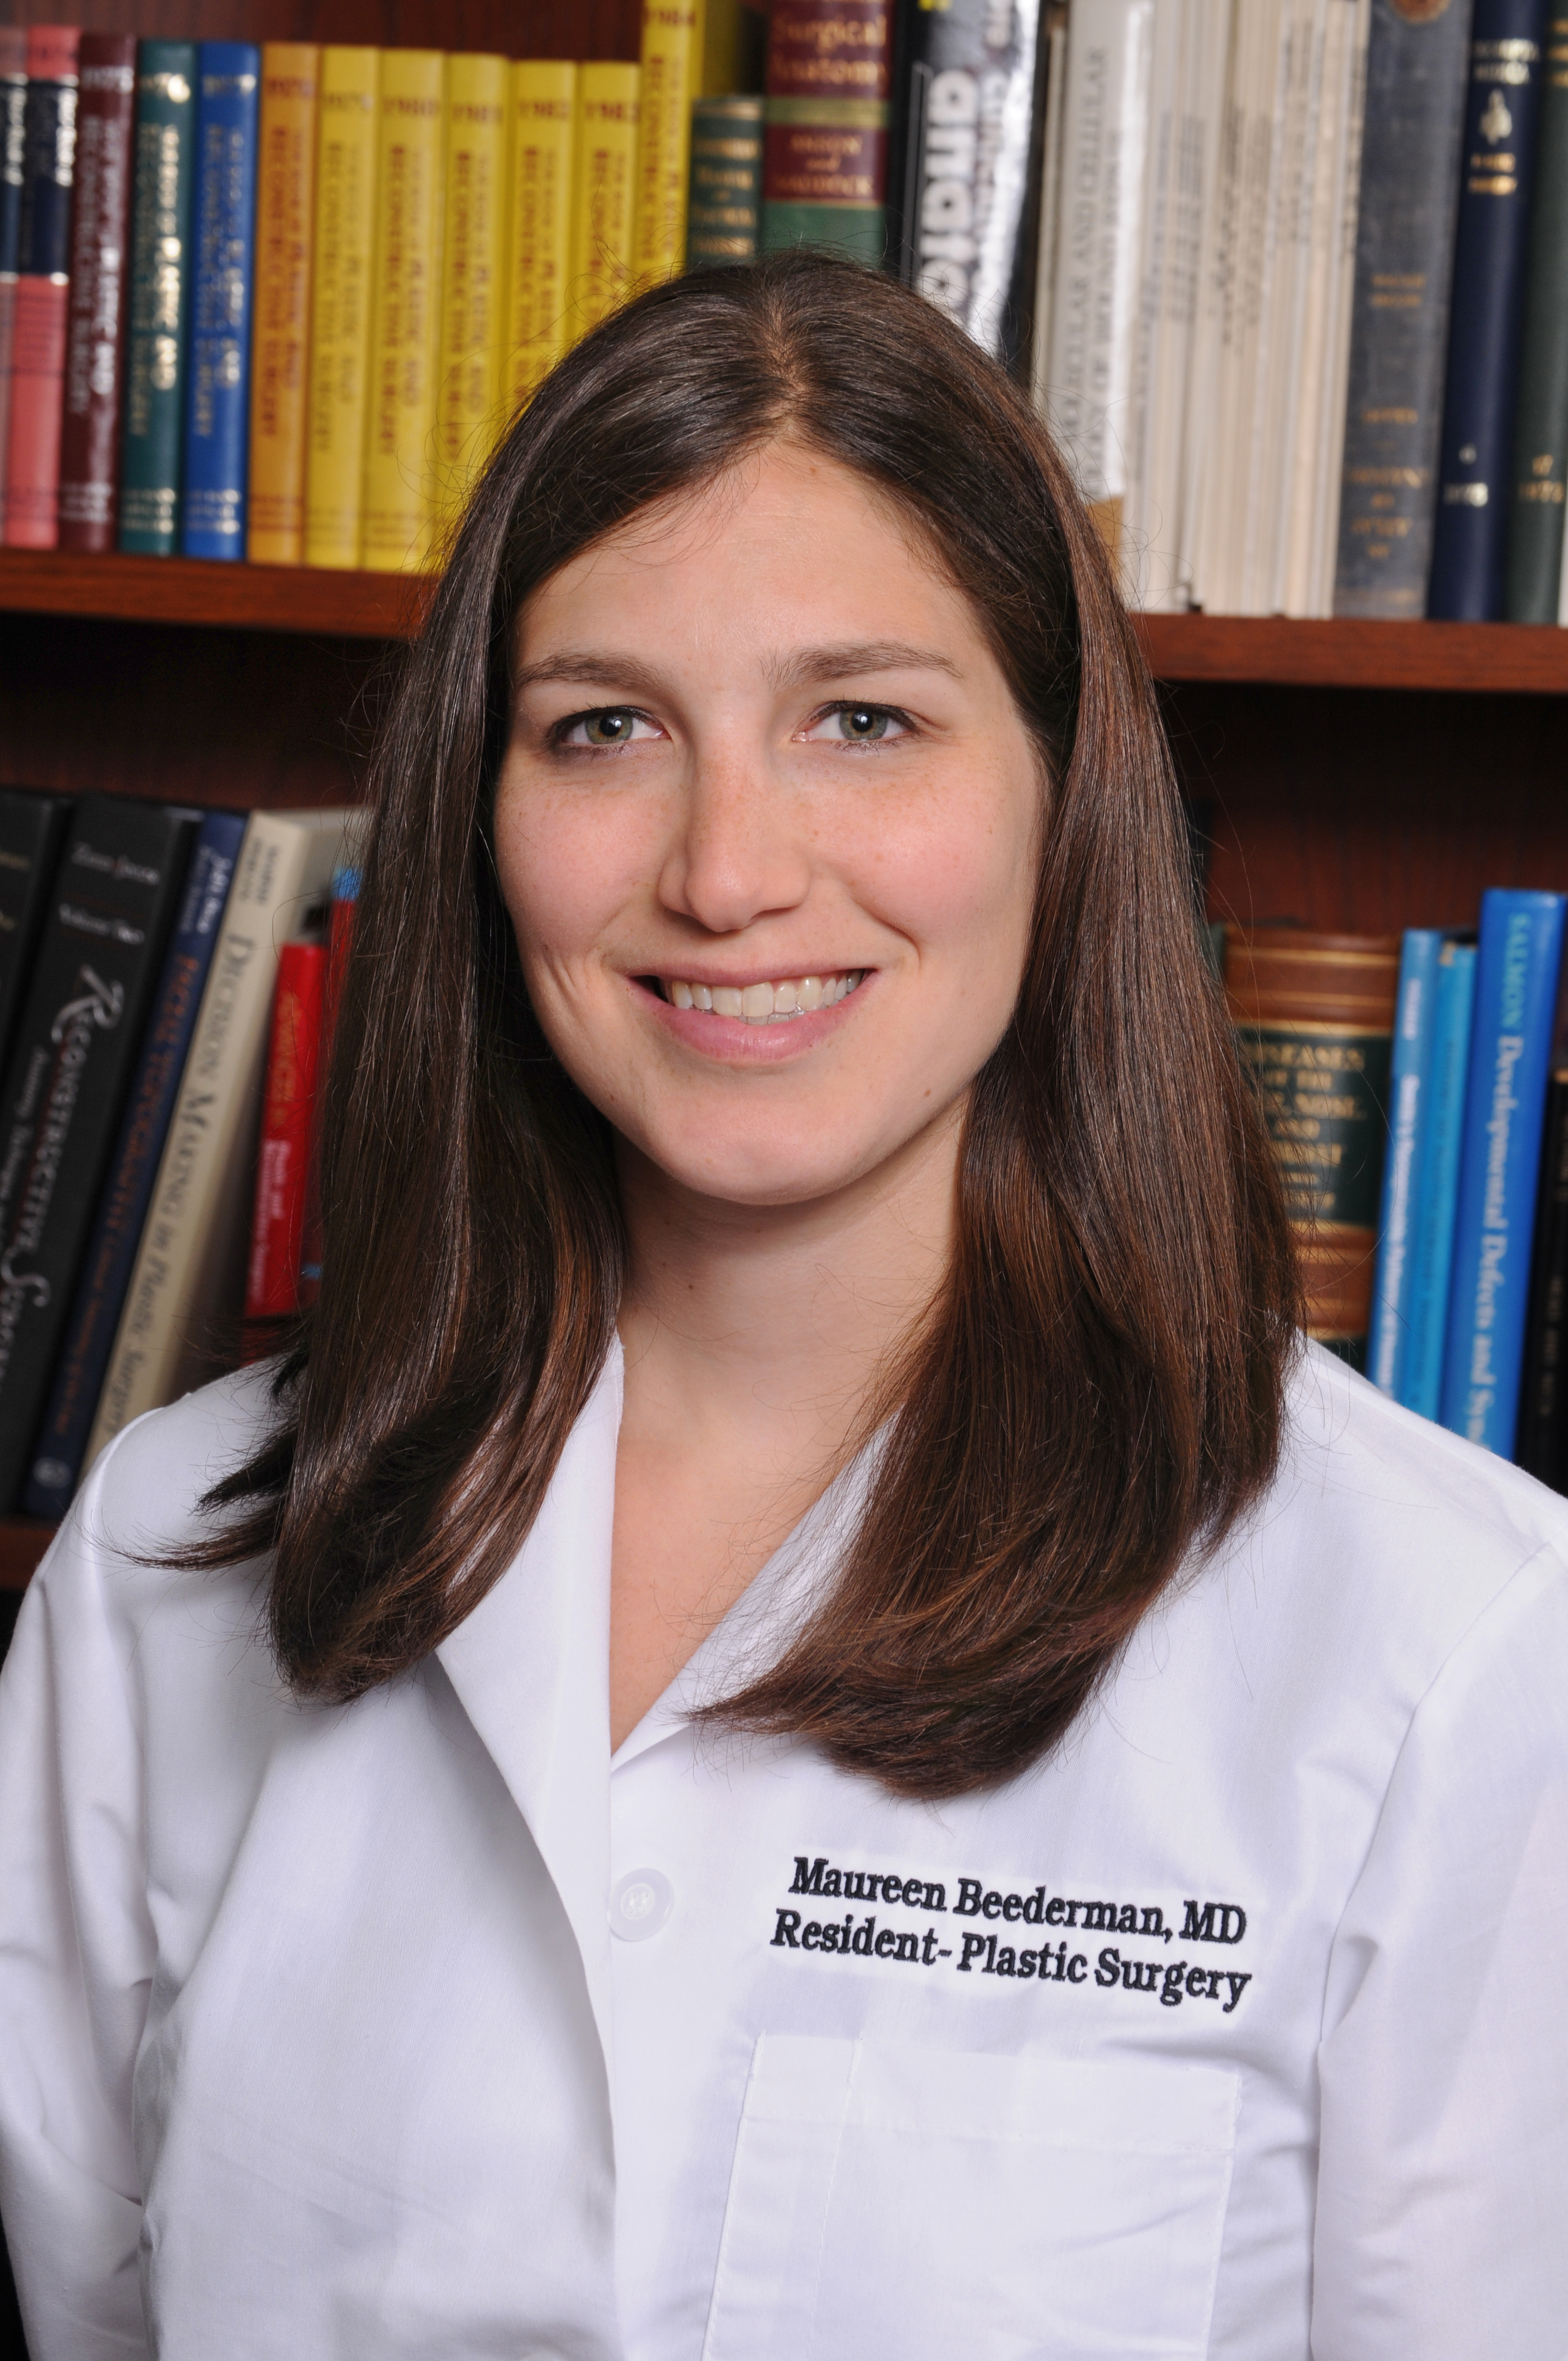 Photo of physician Dr. Maureen Beederman